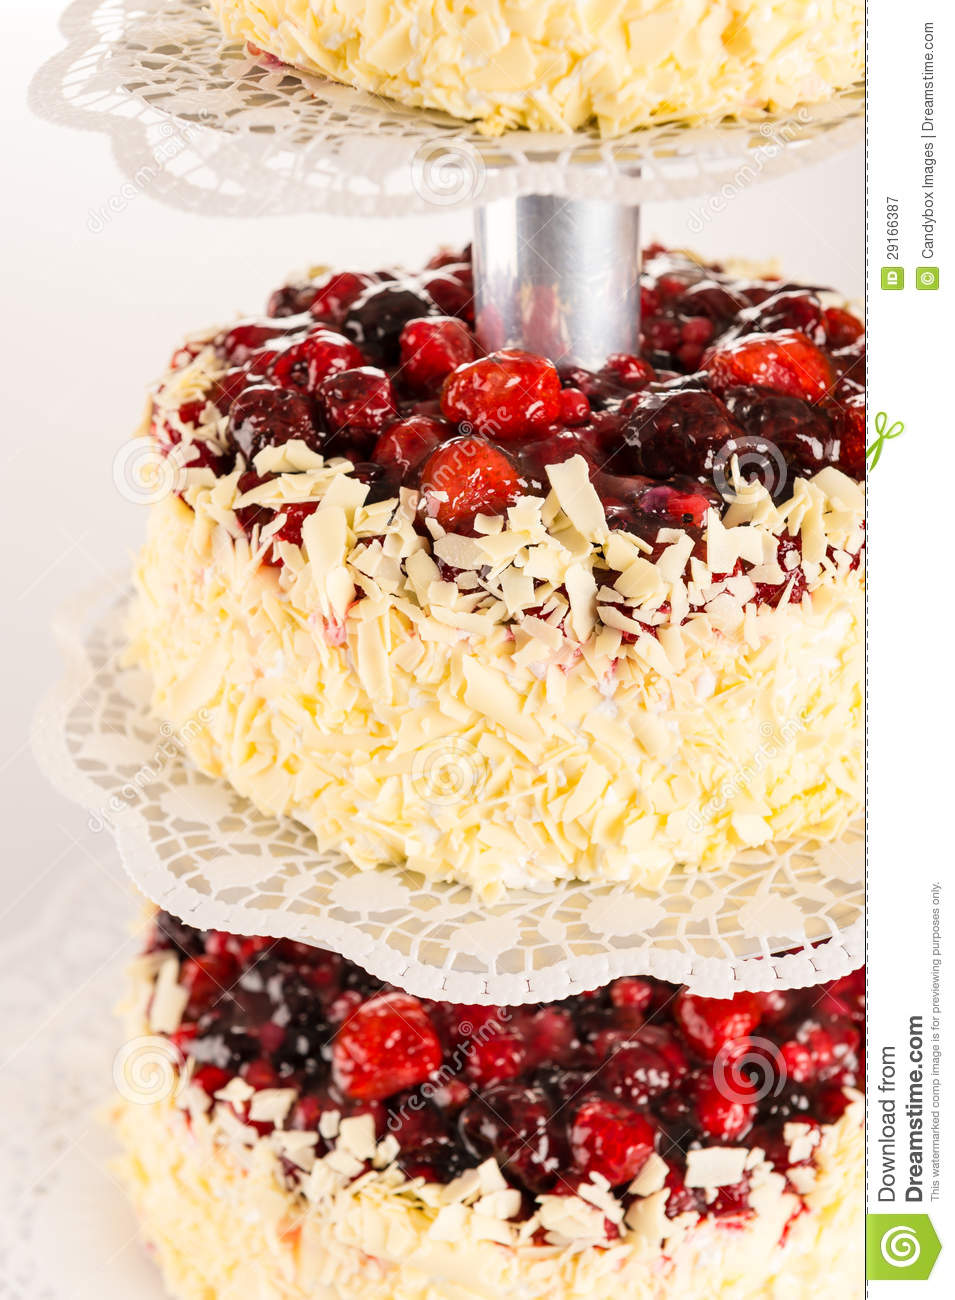 Wedding Cake White Chocolate And Red Berries Royalty Free Stock Photography - Image: 29166387